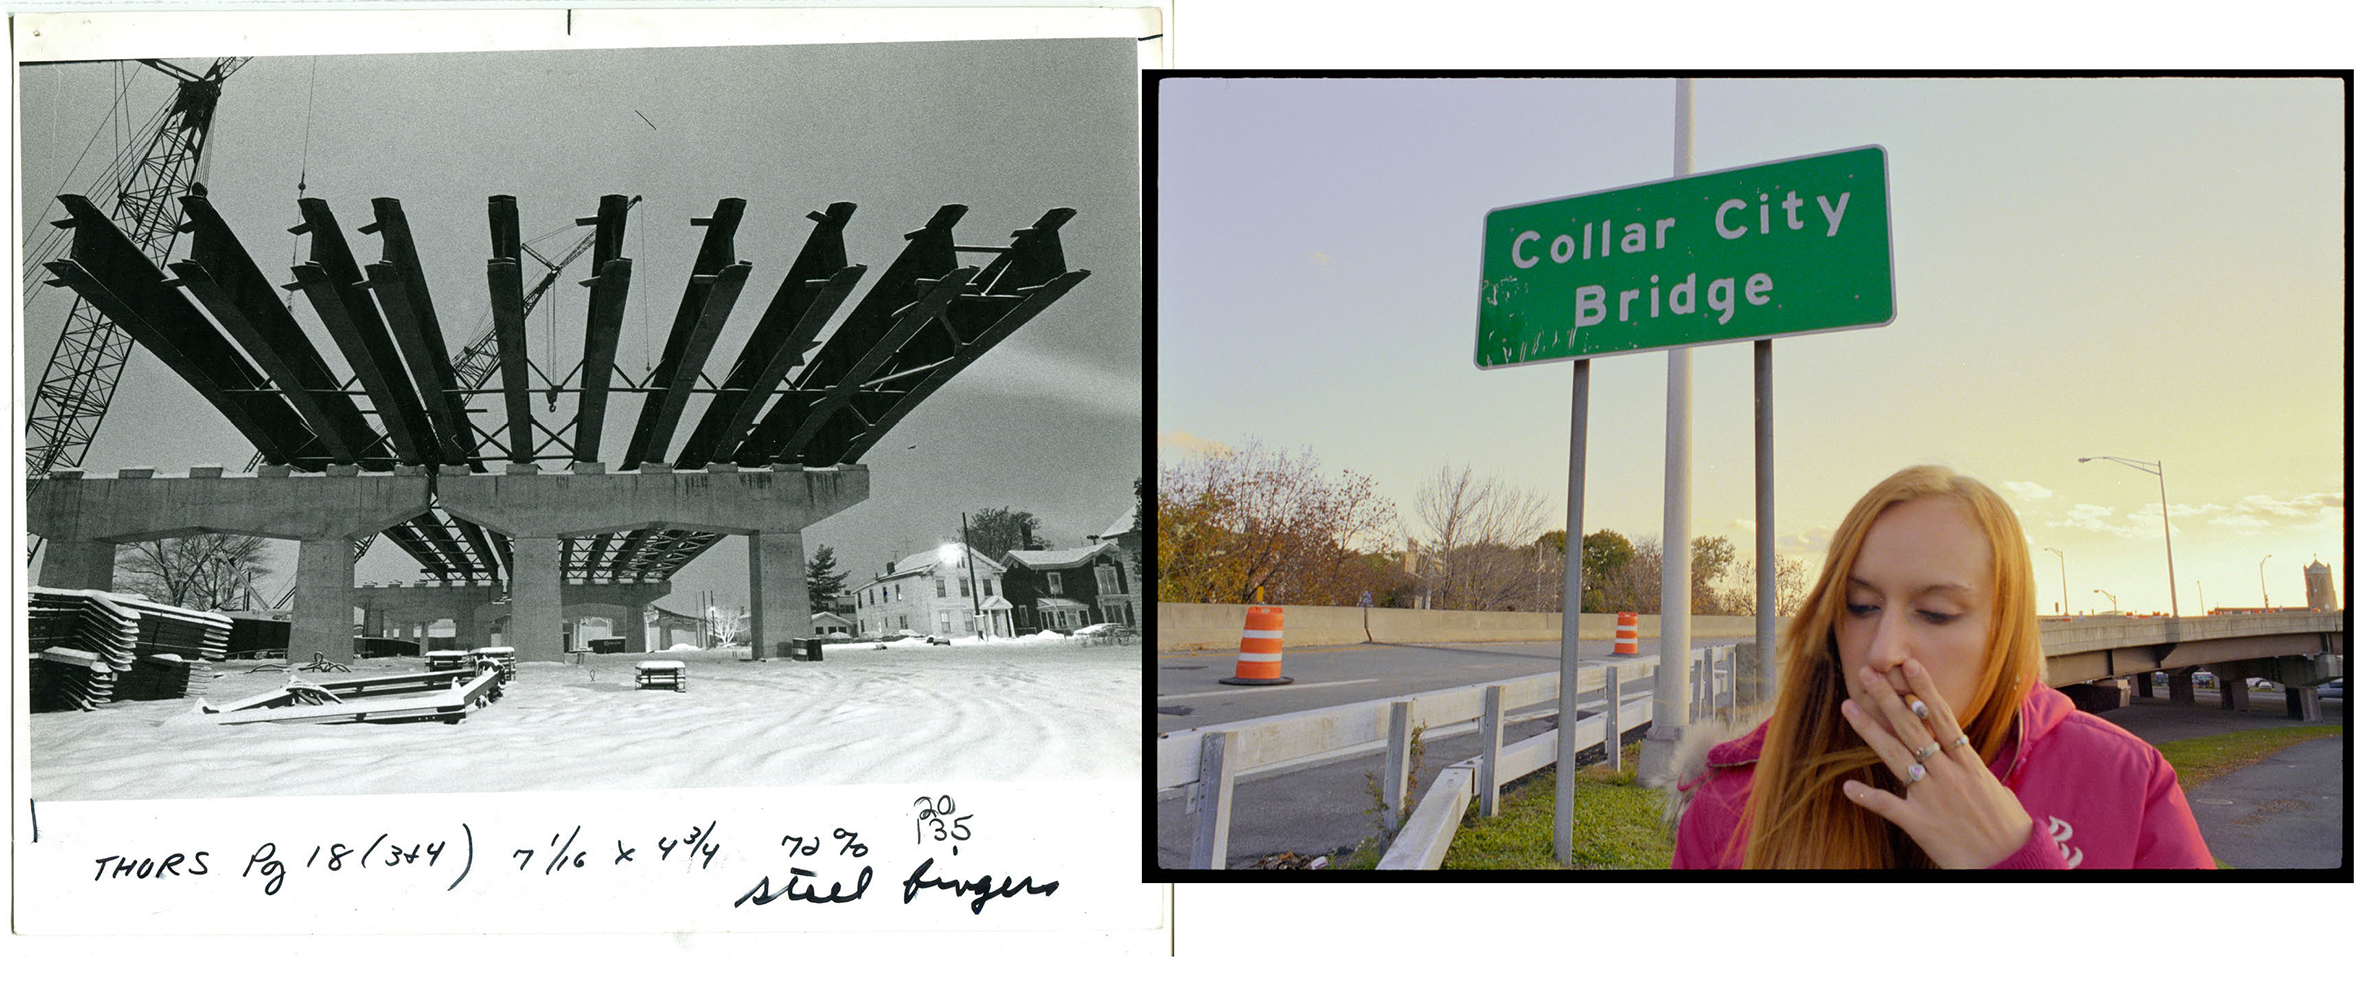 Left: Construction of Collar City Bridge.  Troy, NY, c. late 1970s.                                The bridge was part of a larger, nationwide Urban Renewal program, and one of the developments that city planners say in hindsight played a major part in the death of downtown Troy.                                                              Right: Kayla at Collar City Bridge, on the way to her first job interview at a Dunkin Donuts in a strip mall across from the 1787 highway.  Spring 2007.